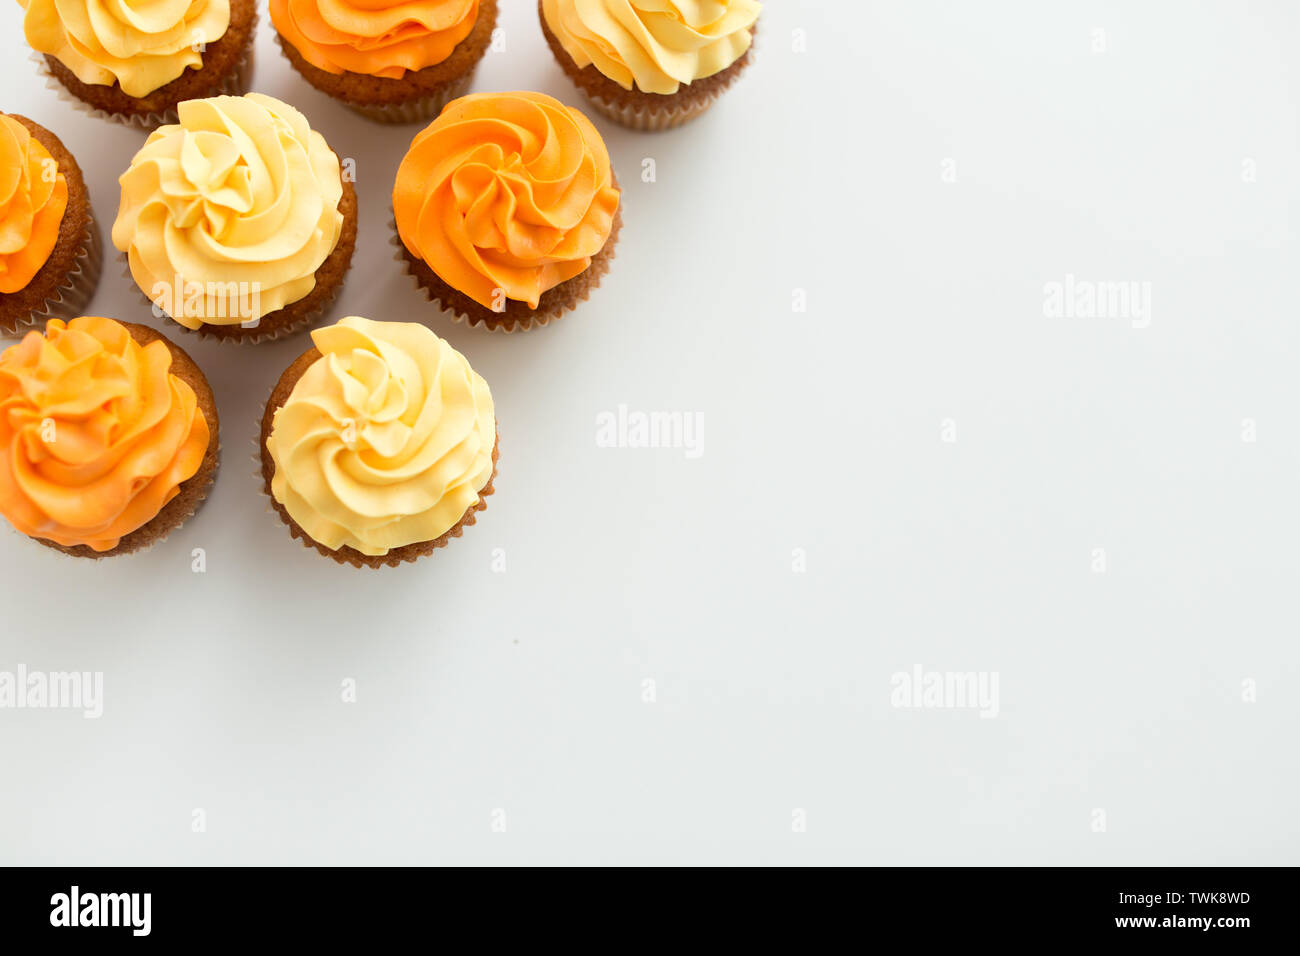 cupcakes with frosting on white background - Stock Image